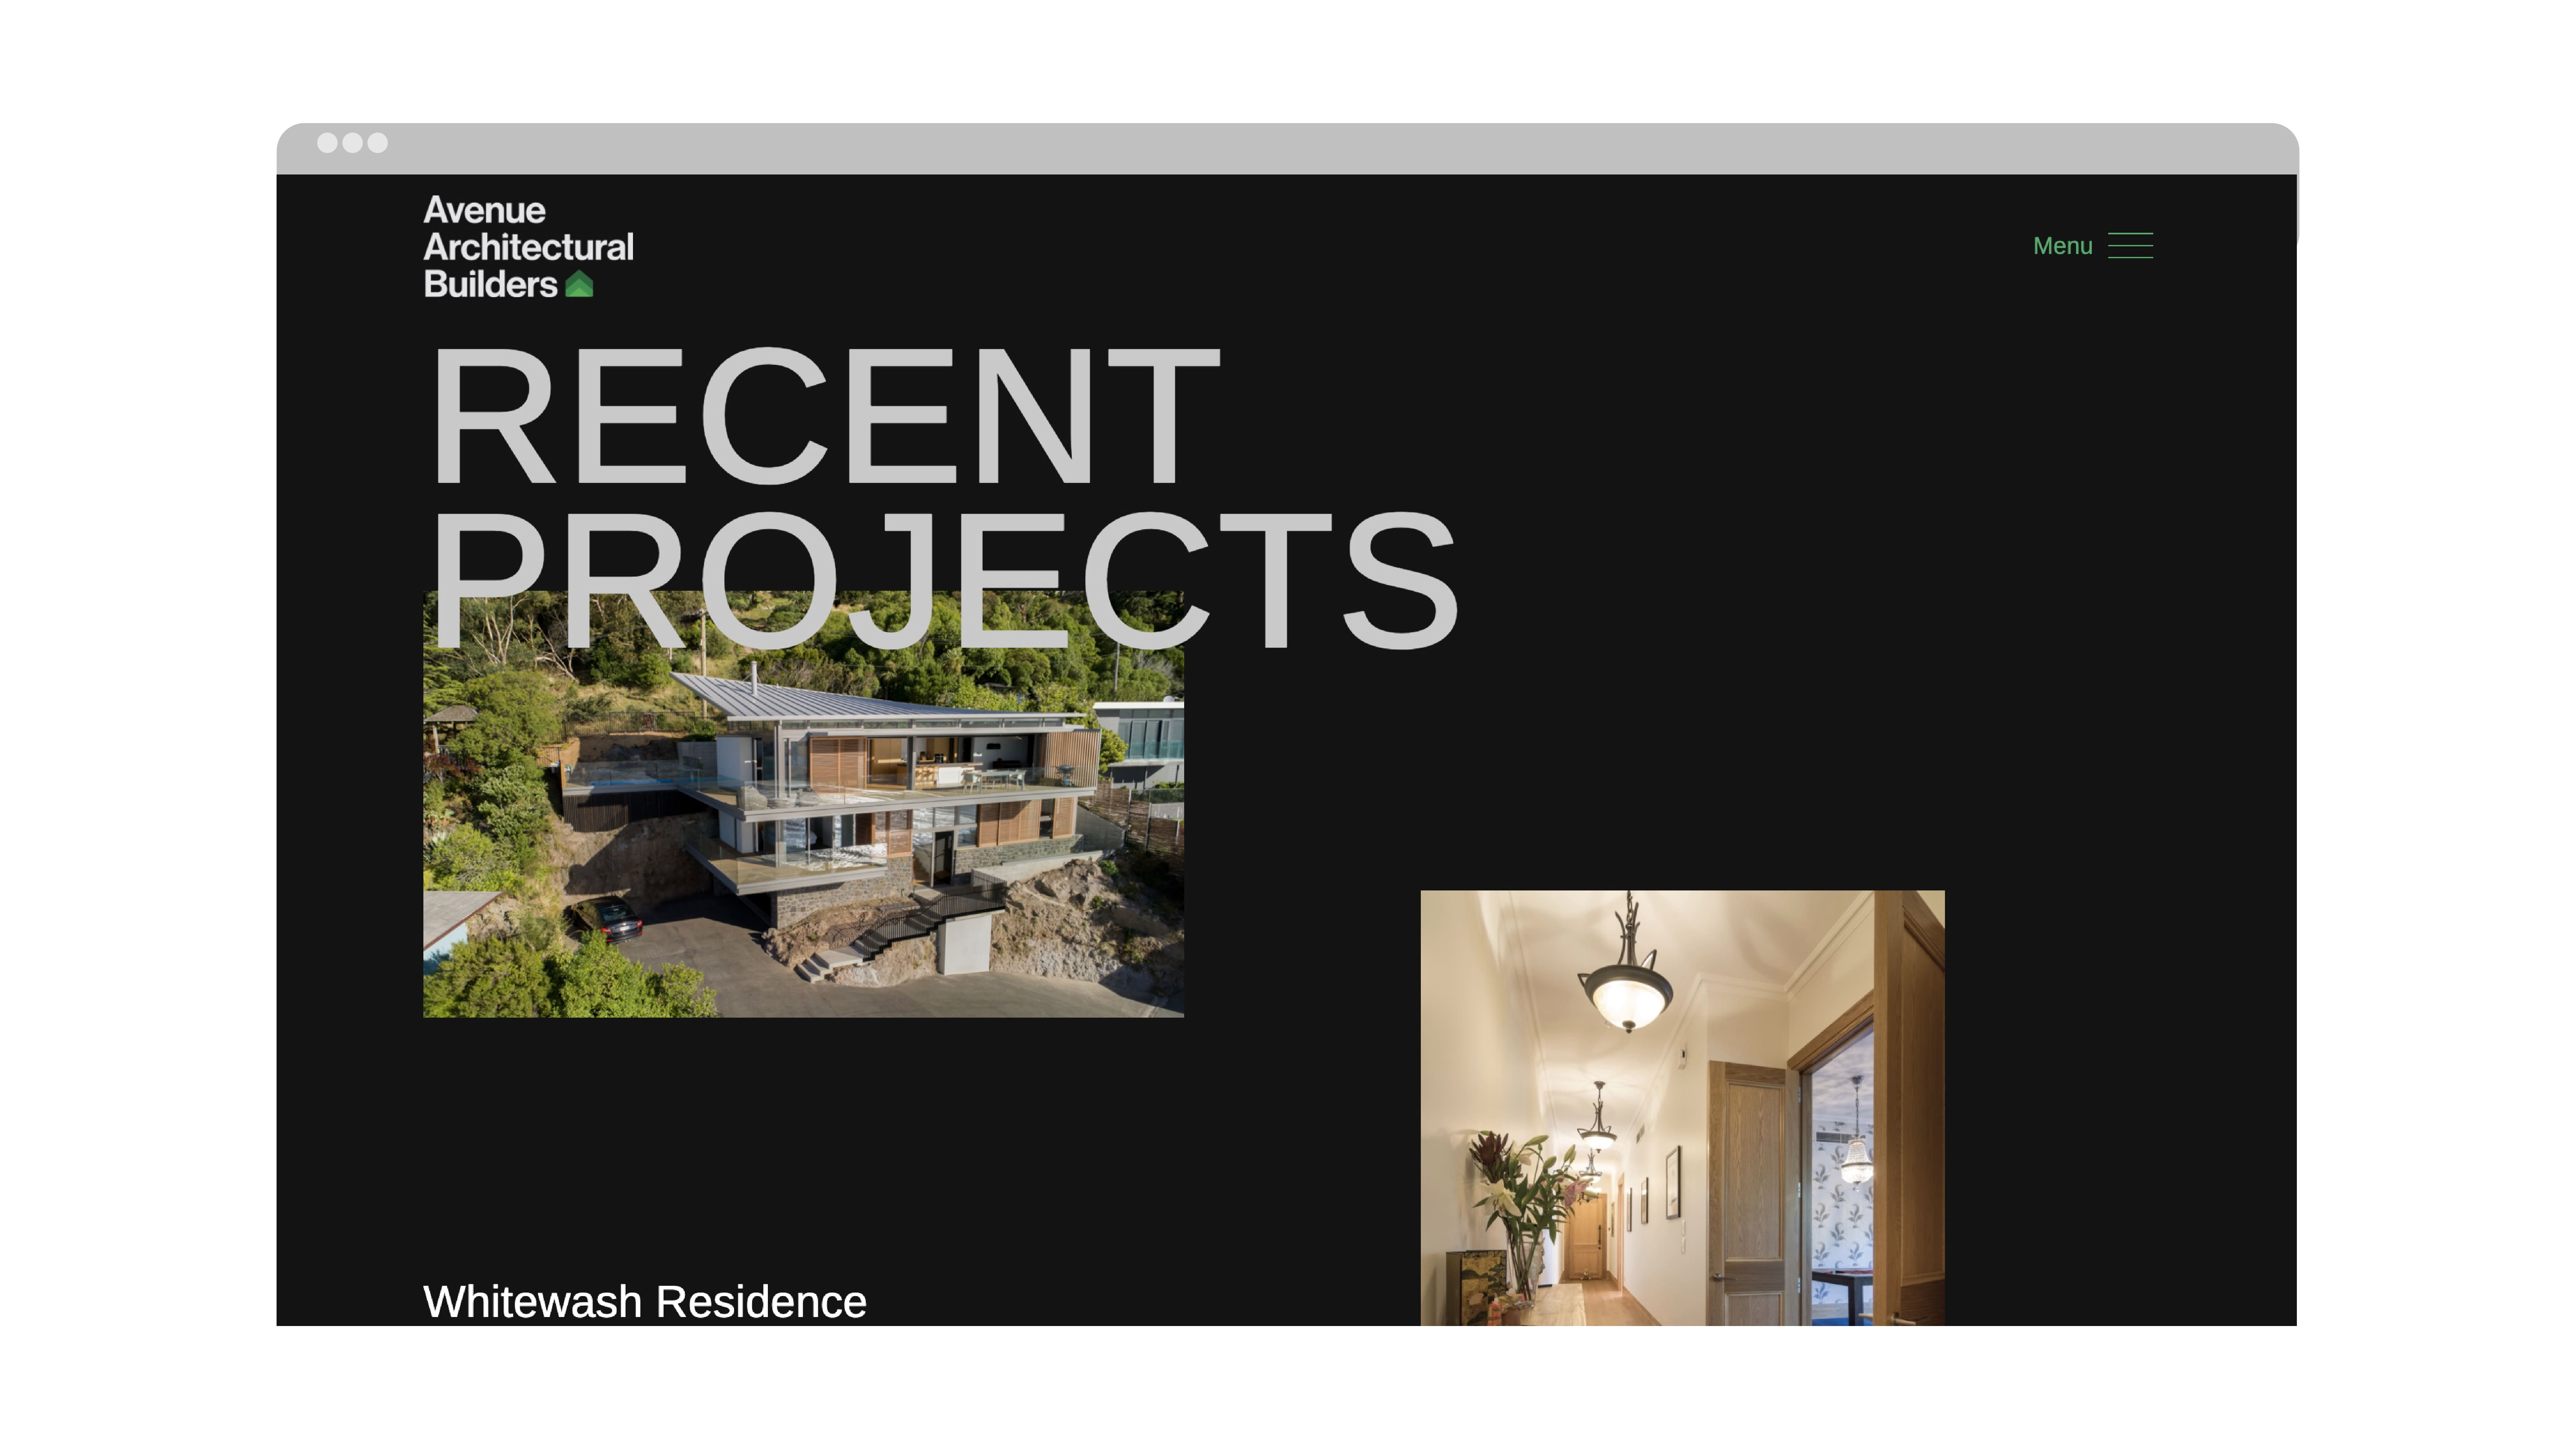 attraction studio avenue architectural brand web website recent projects